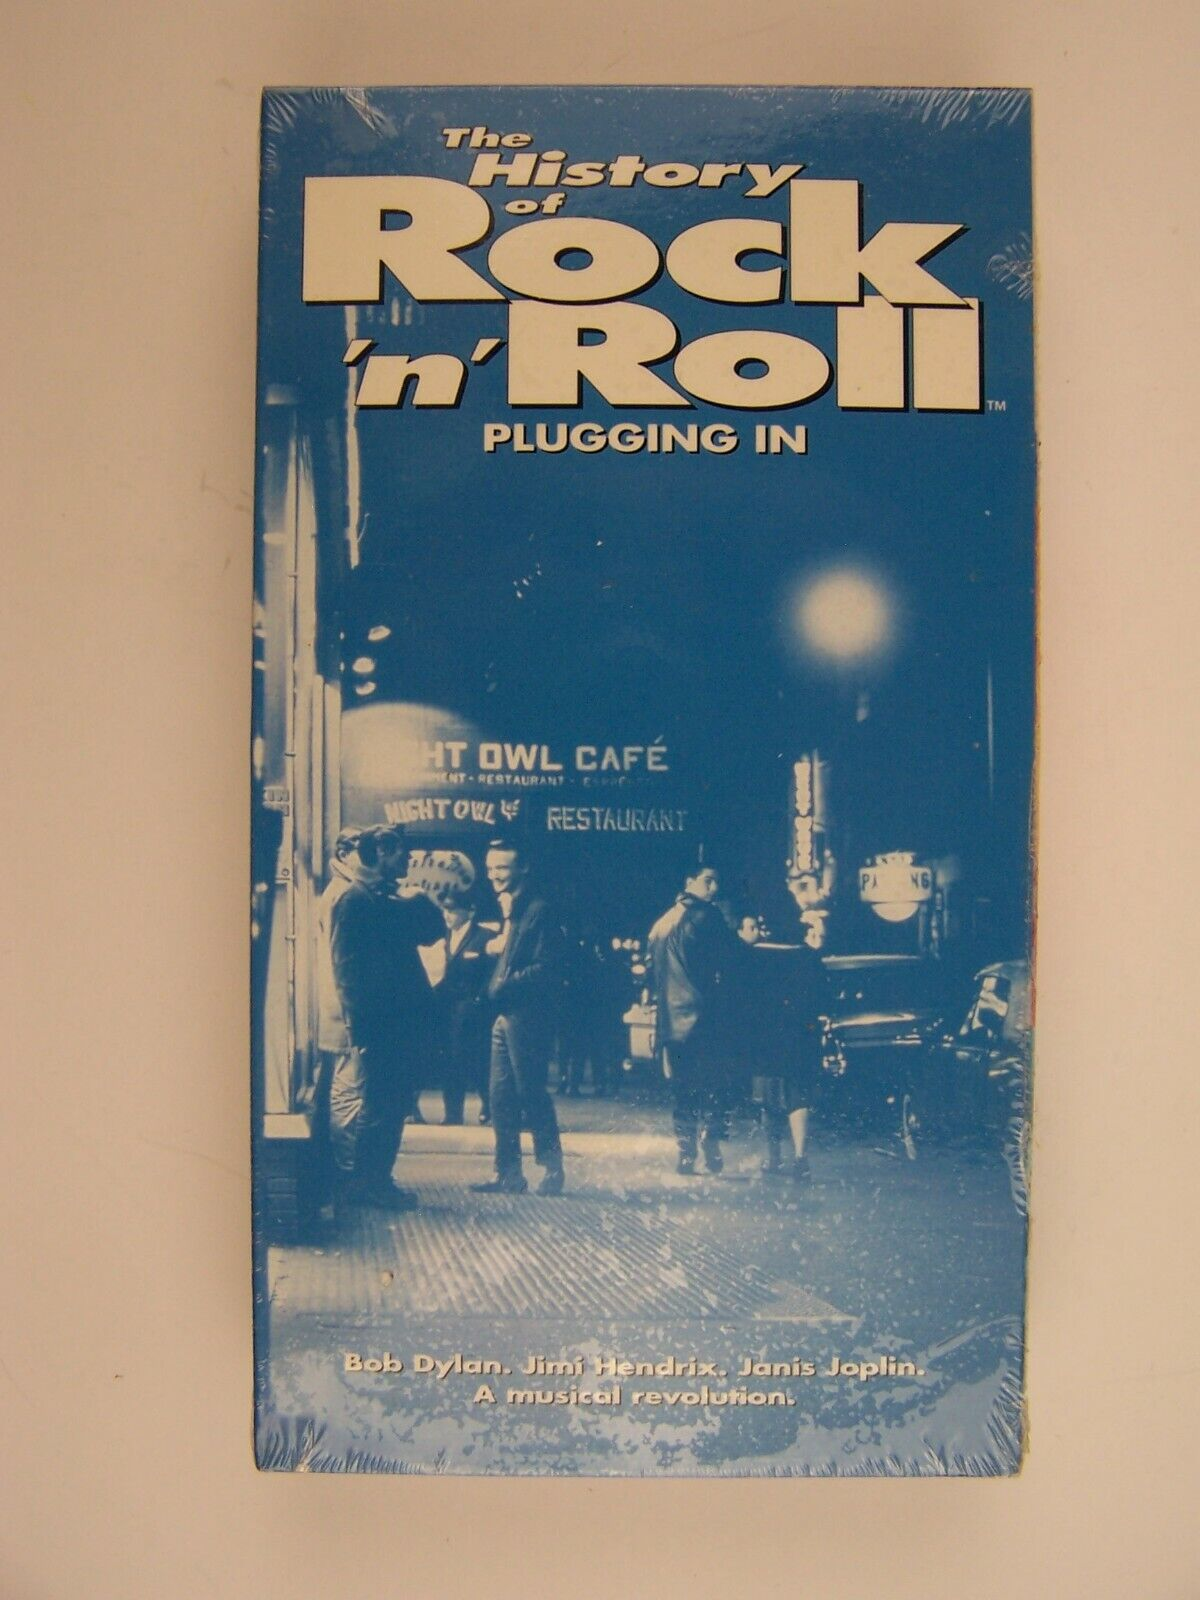 The History of Rock N' Roll Episode 4 Plugging In VHS N